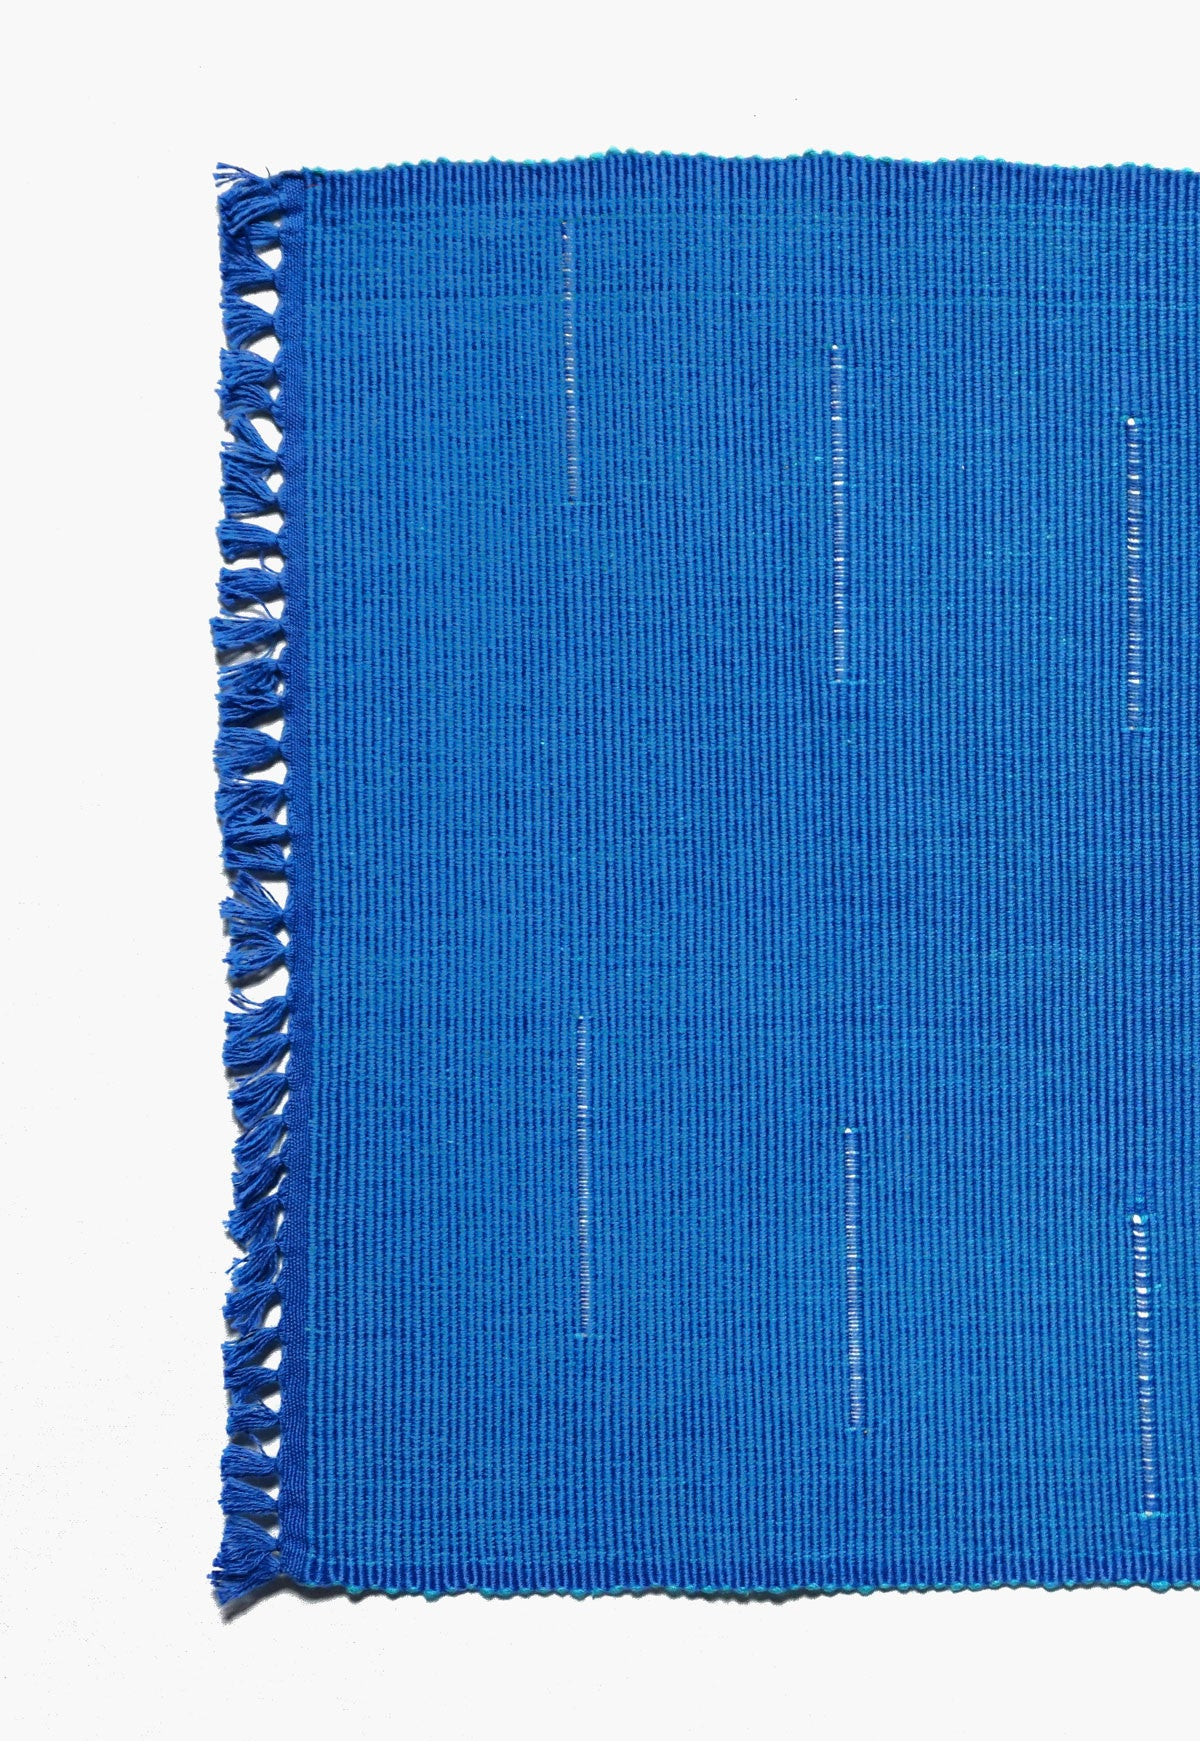 Lahar Ribbed Placemats (Pair)